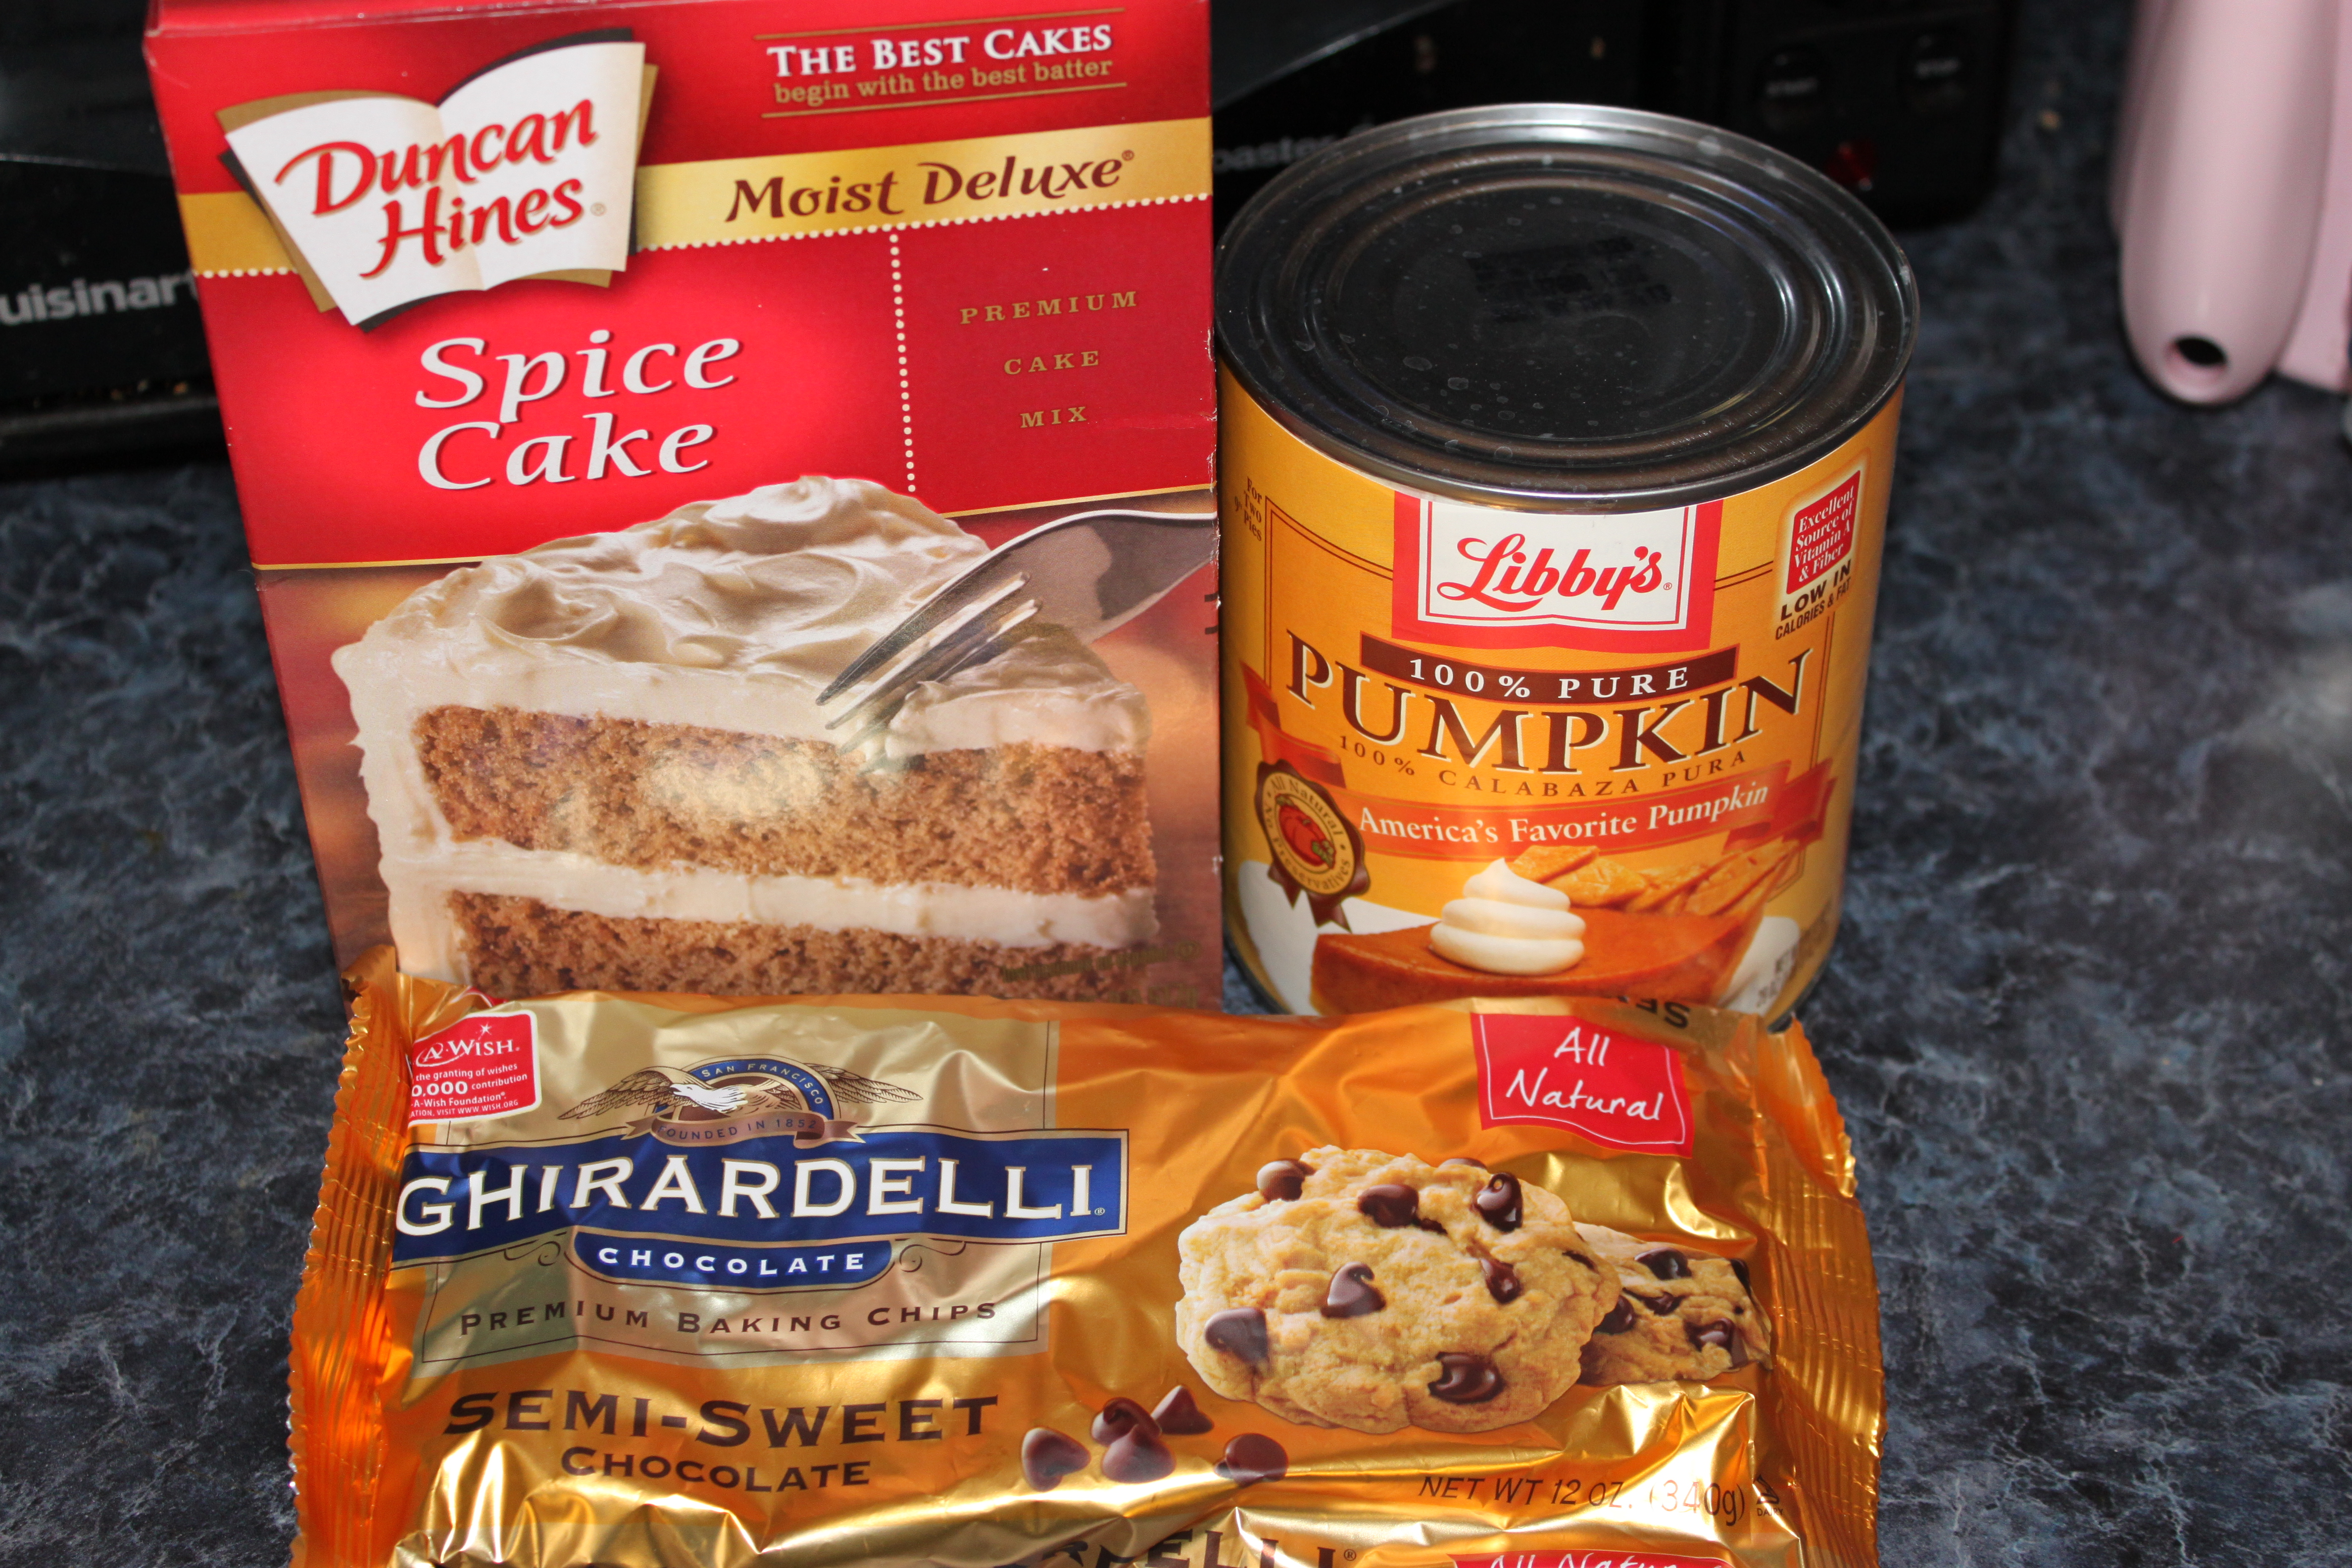 Pumpkin Chocolate Chip Cookies With Spice Cake Mix